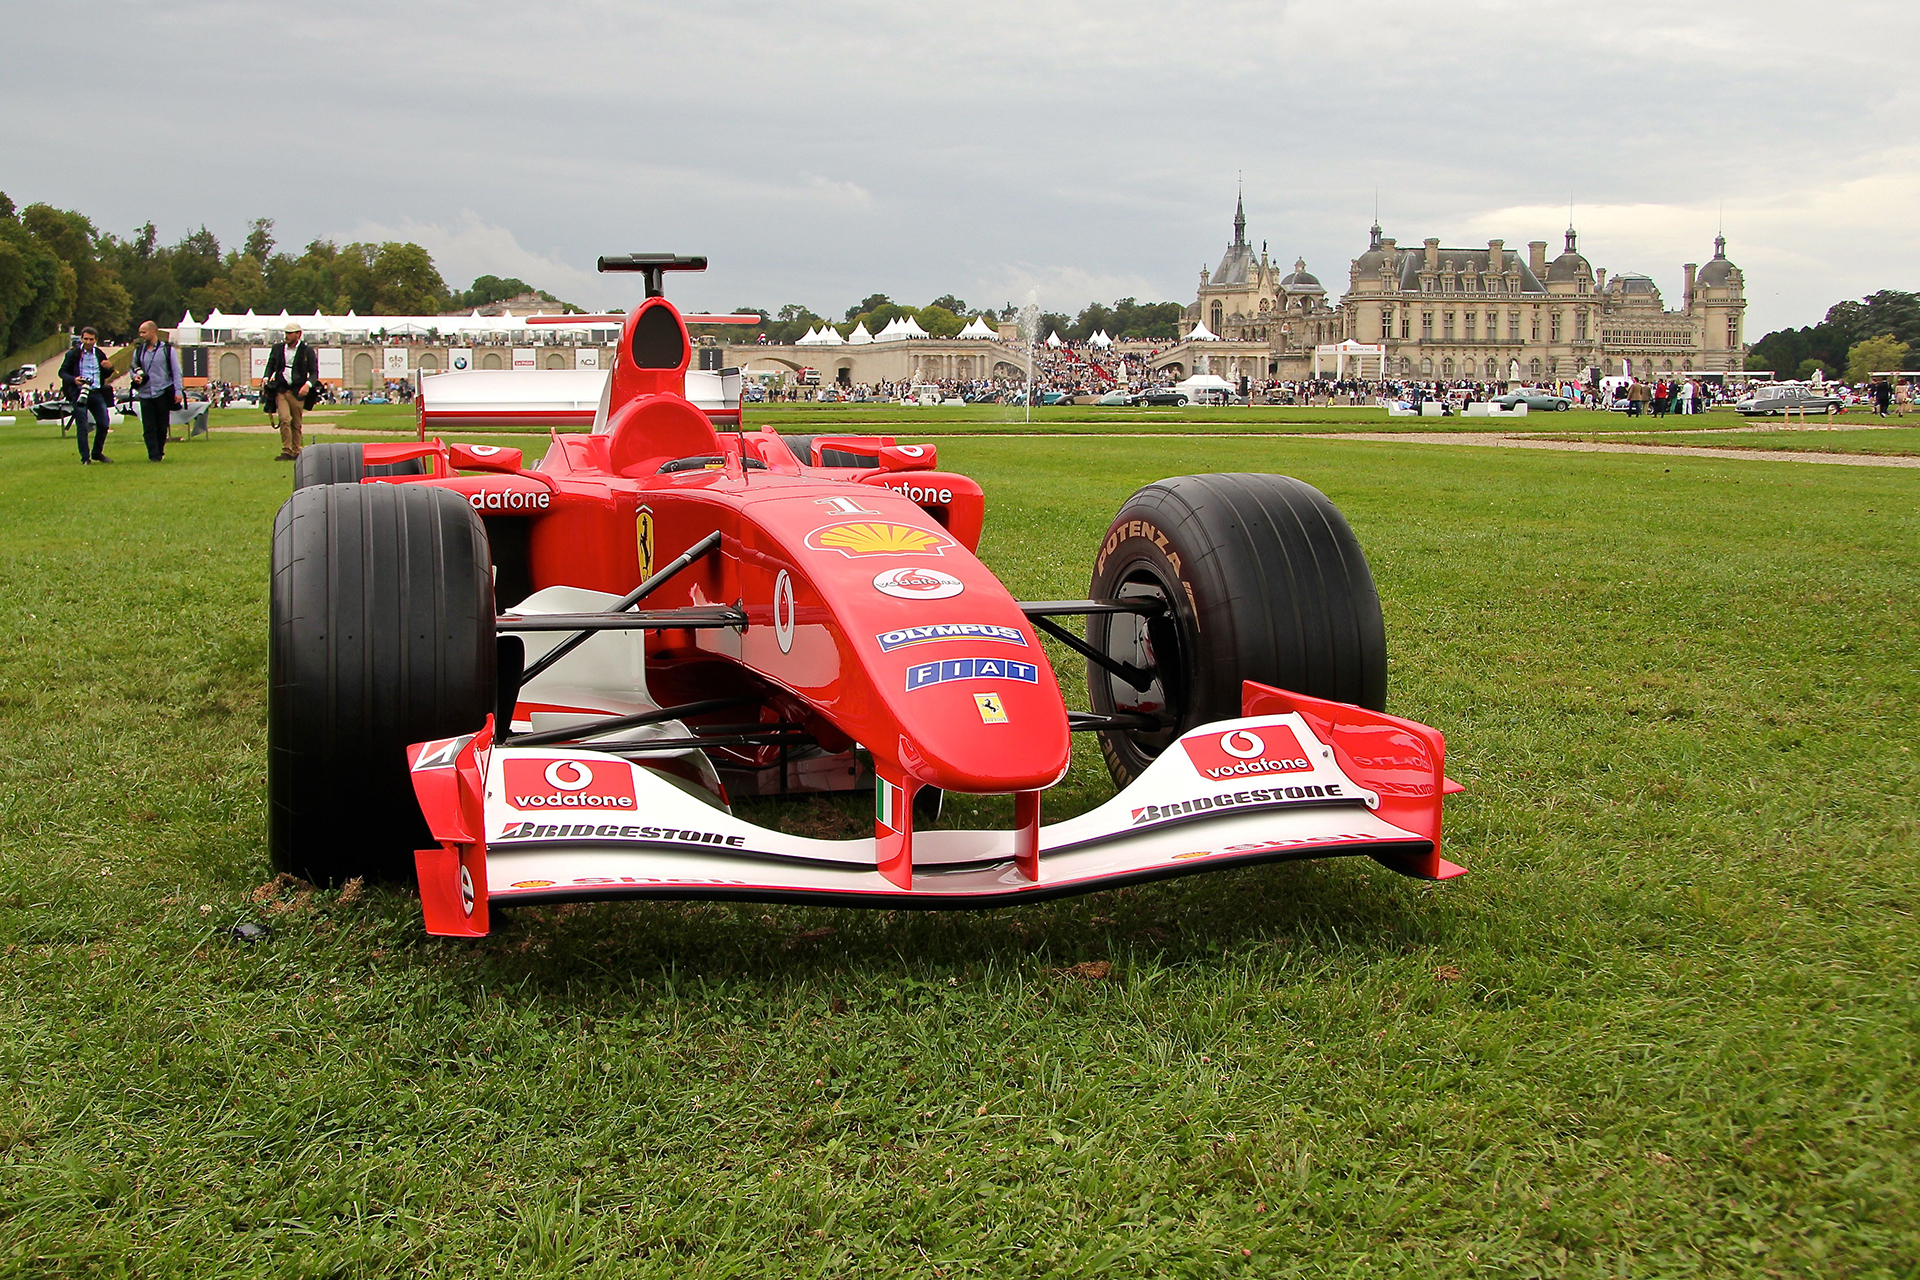 Ferrari F1 F2007 - Chantilly - 2016 - photo Ludo Ferrari